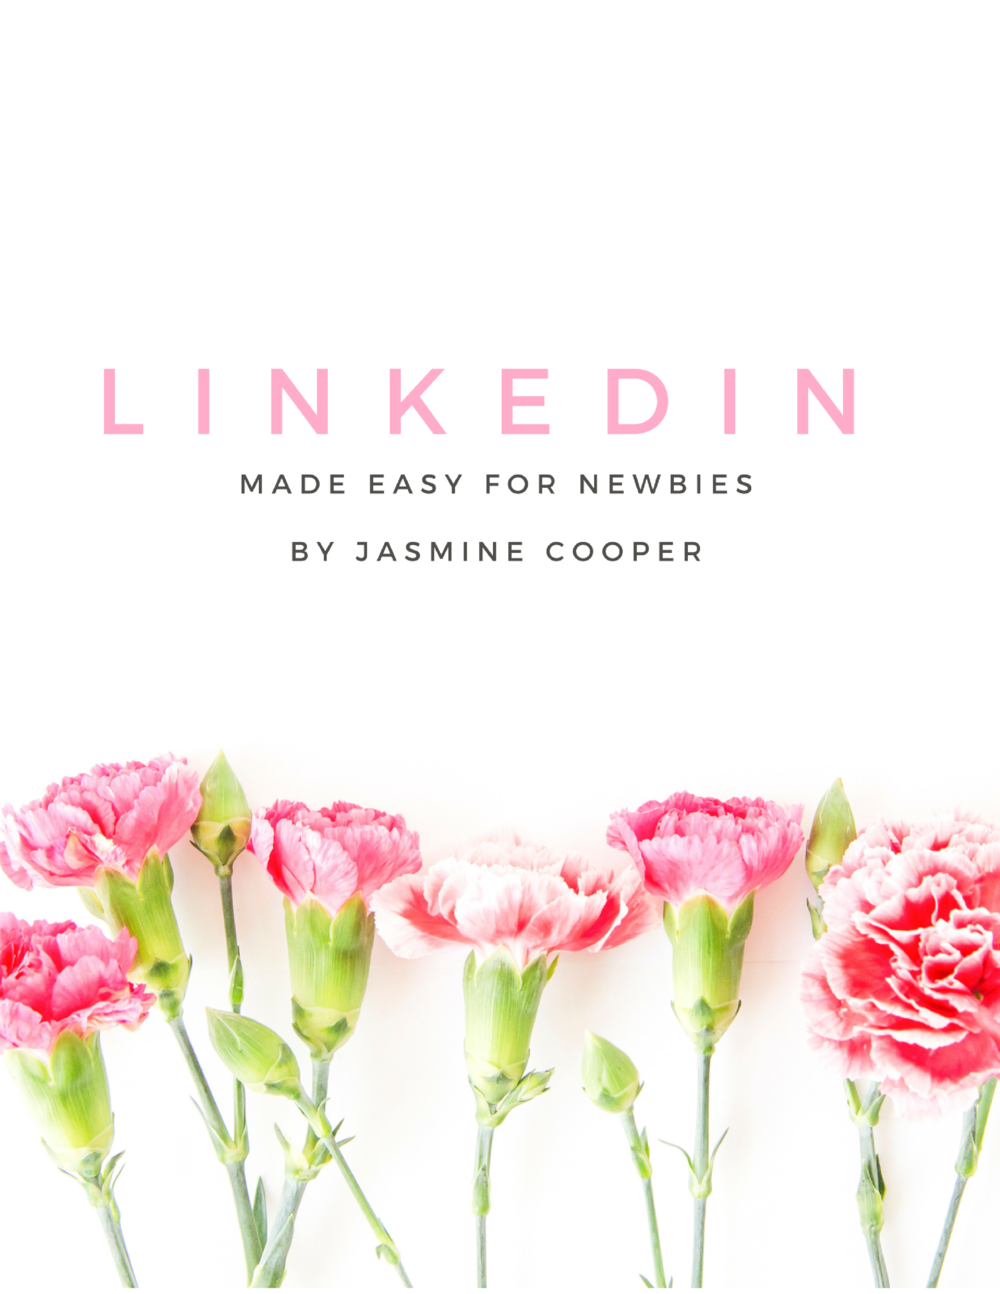 LinkedIn made easy for newbies